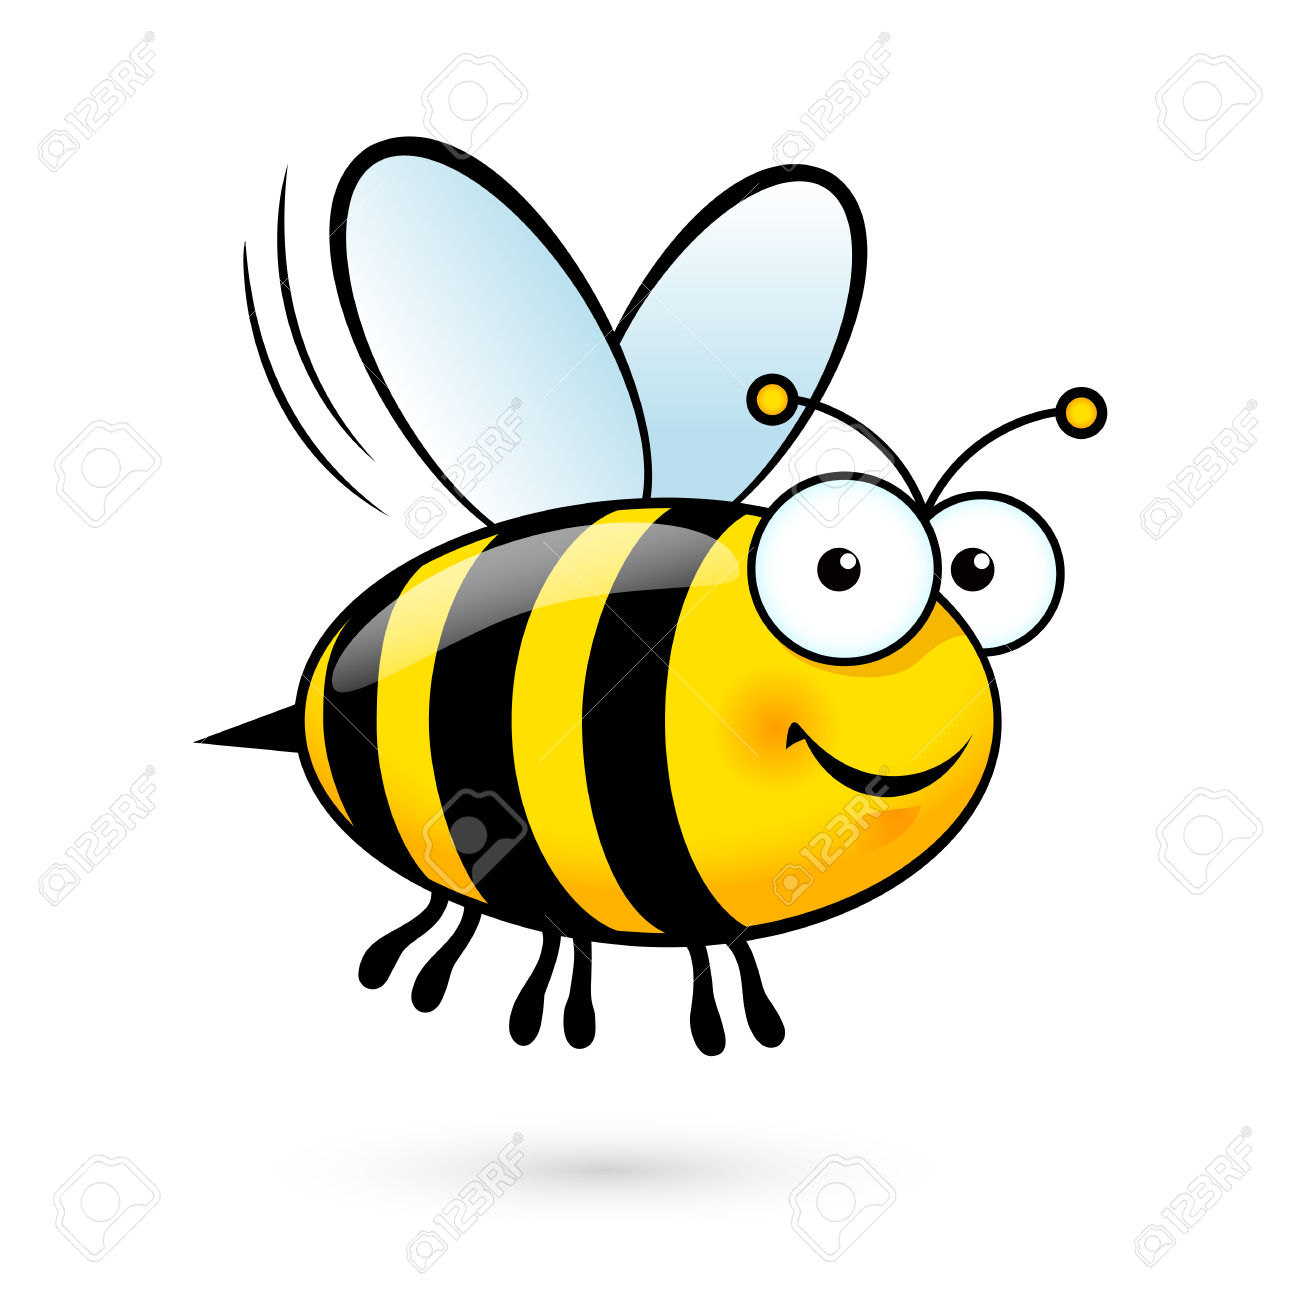 cute honey bee clipart